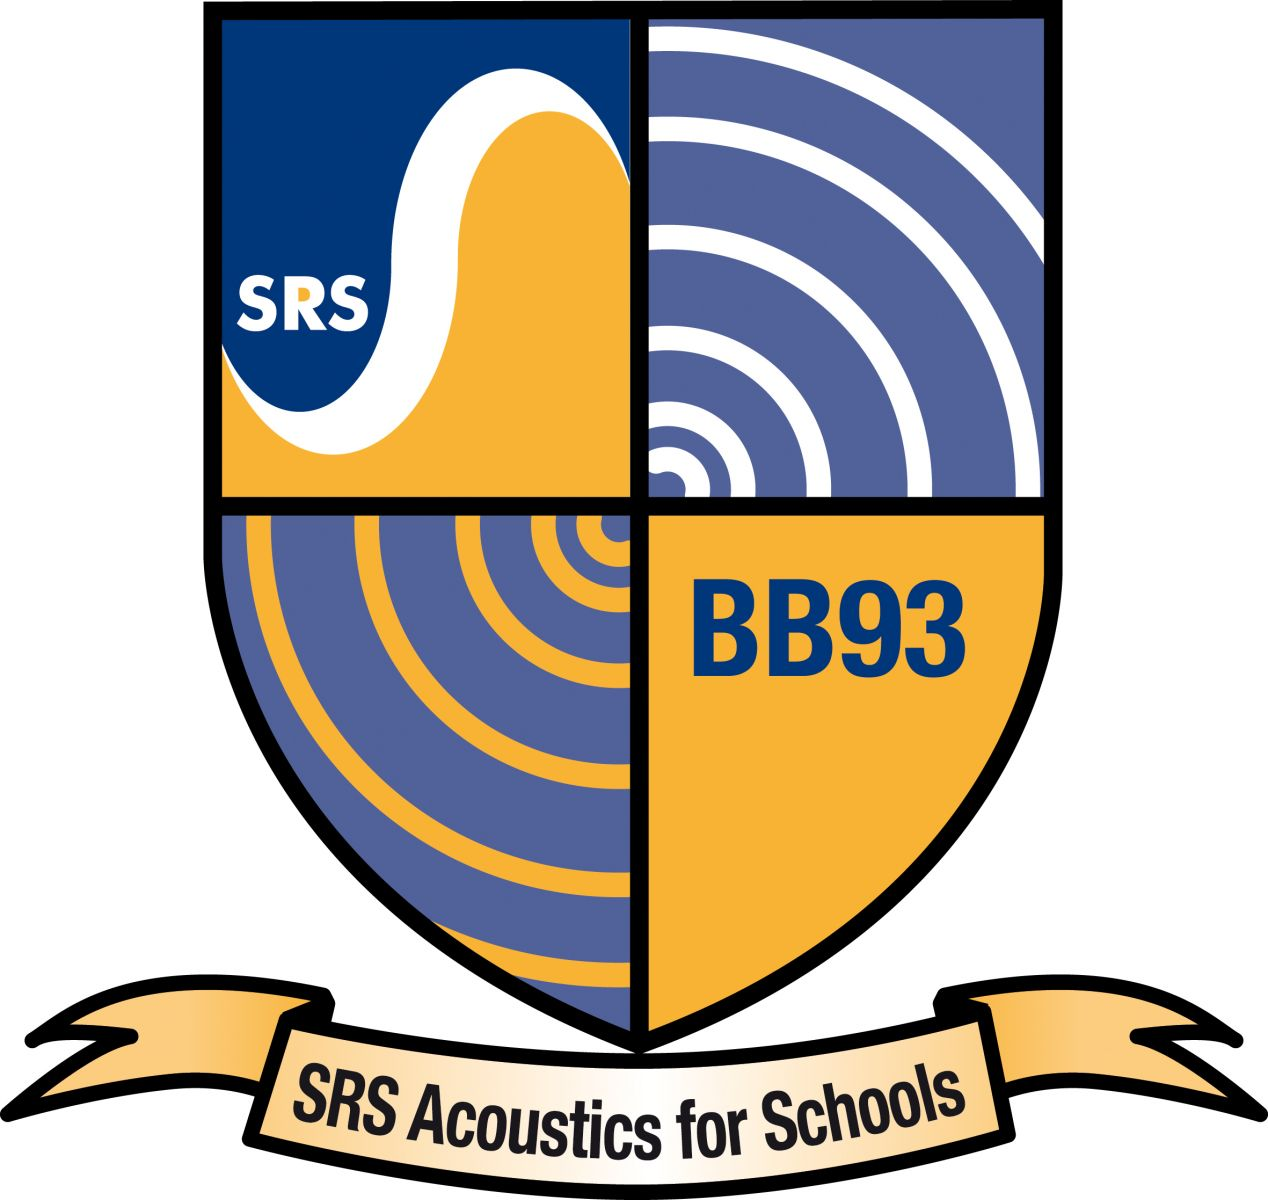 SRS Acoustics for Schools - Free Expertise and Advice from Qualified Acousticians